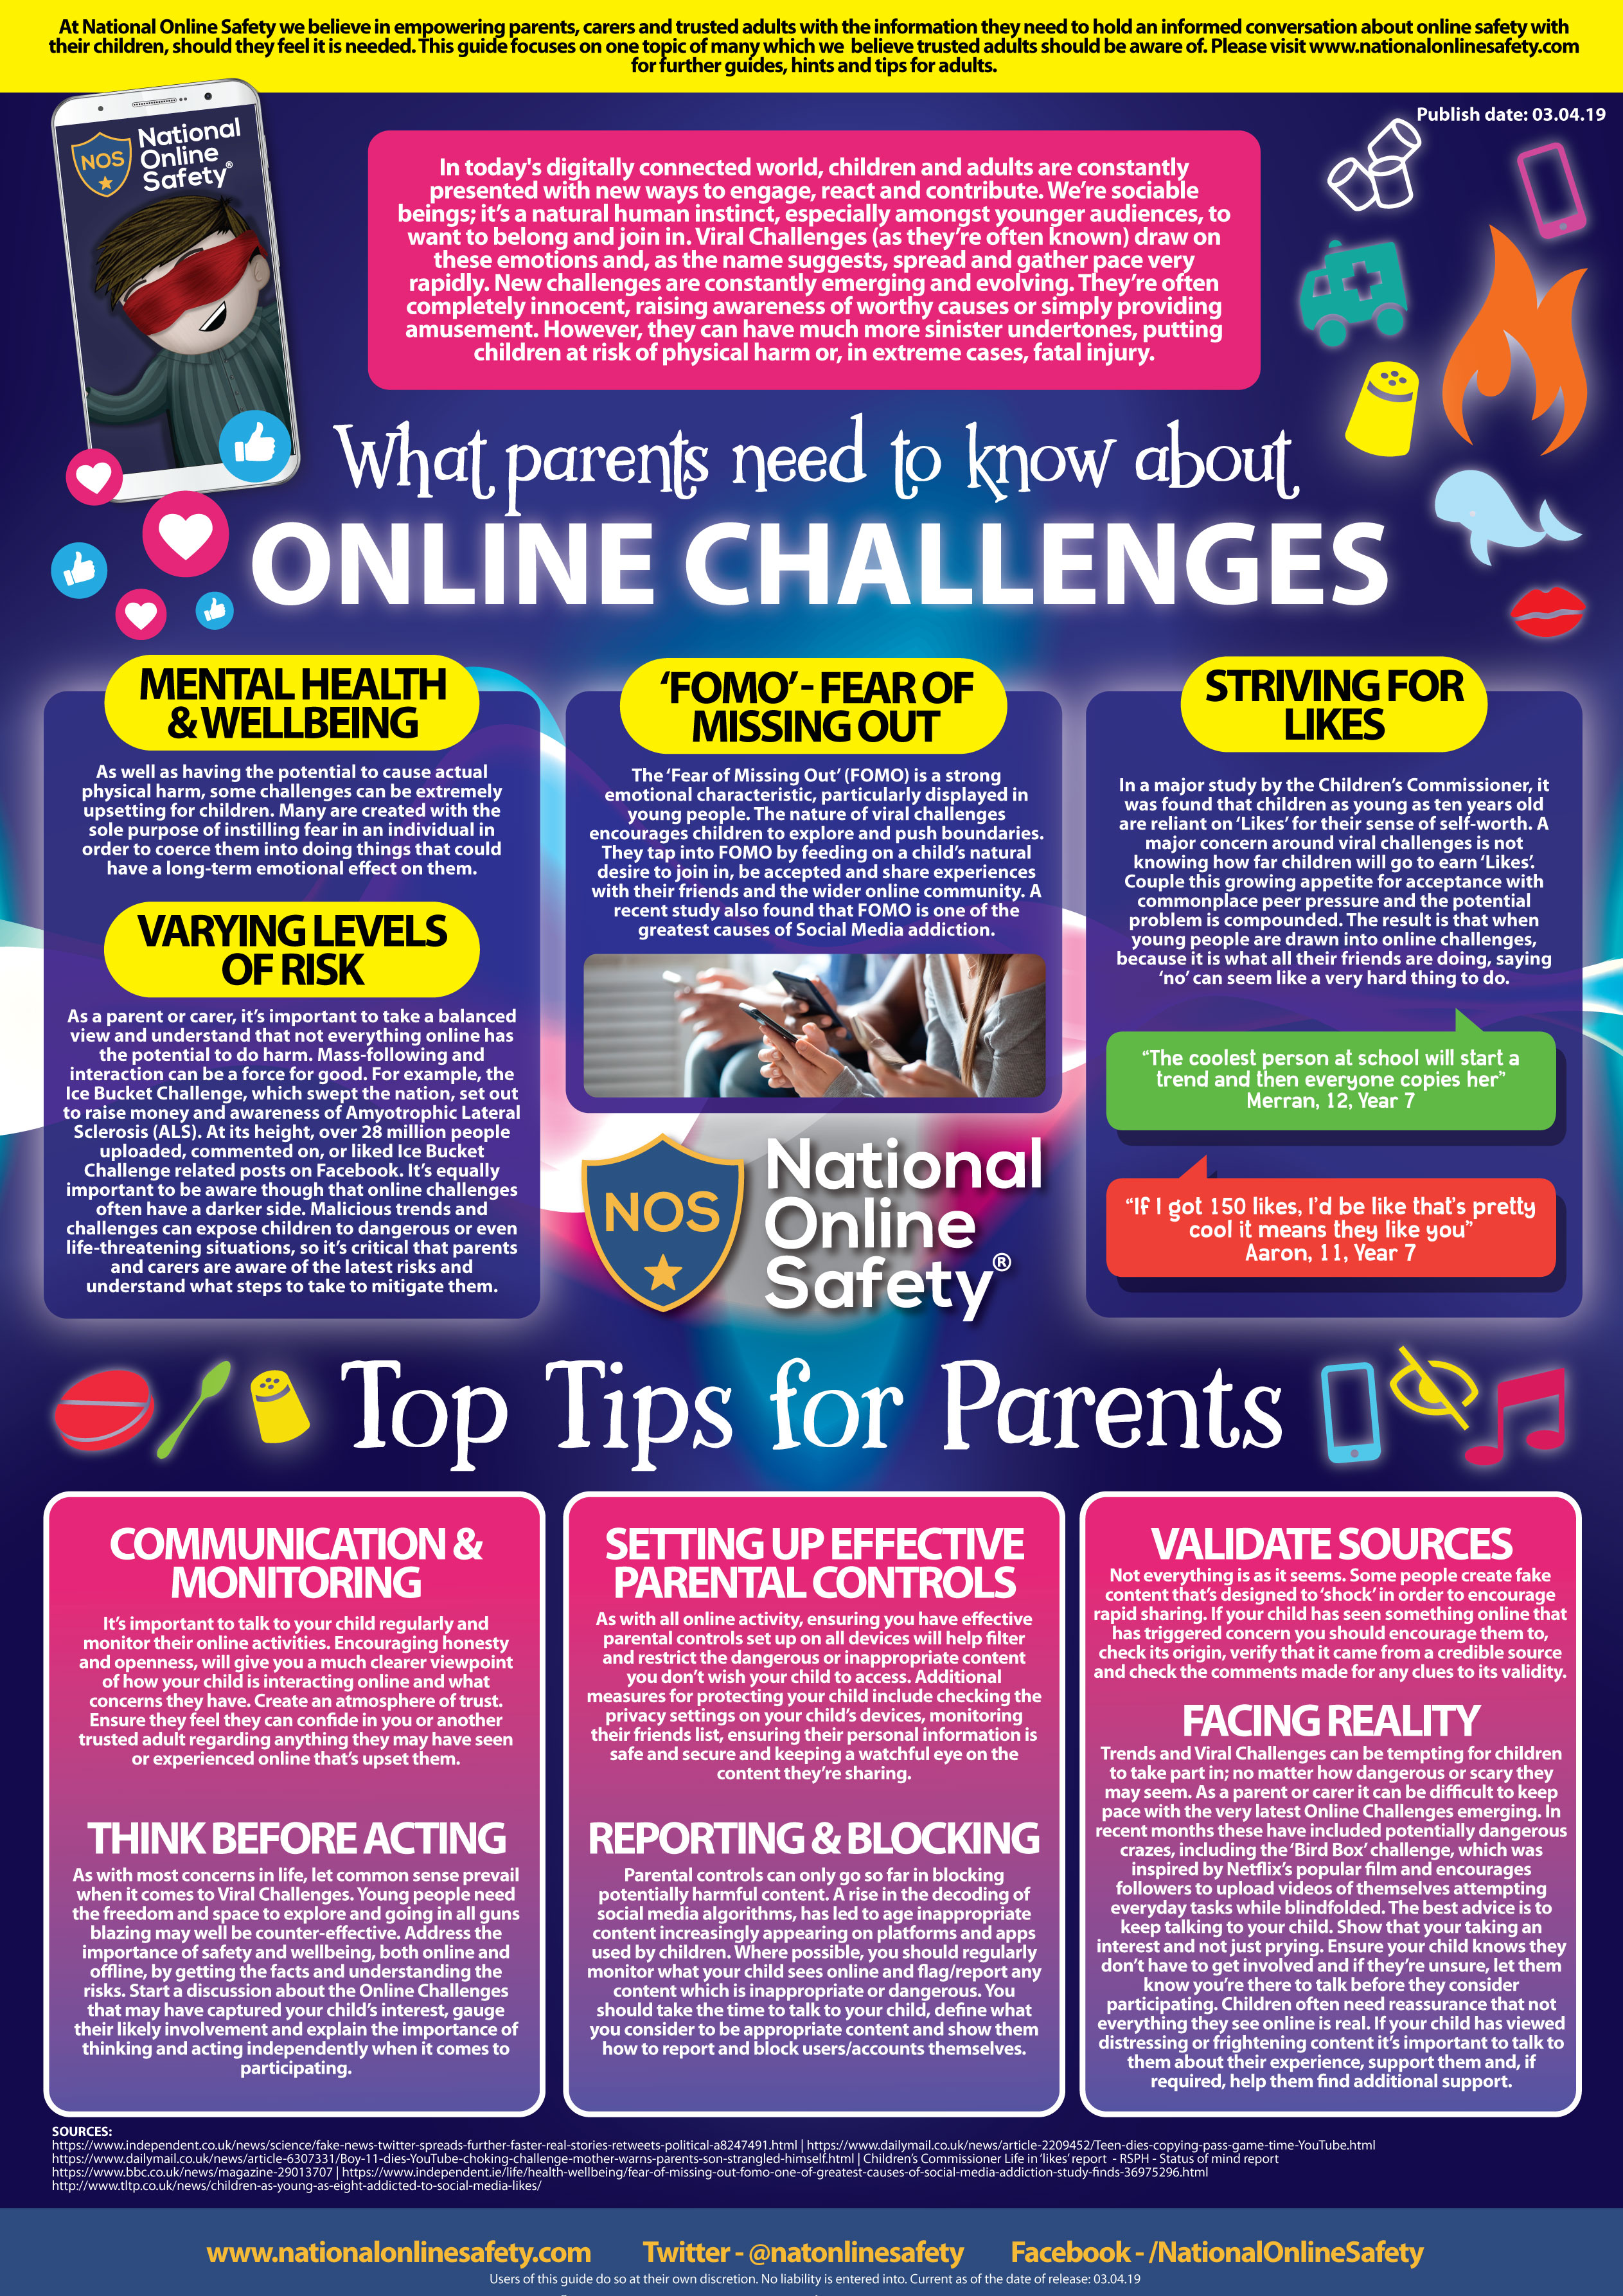 St Barnabas CE Primary School: What Parents/Carers Need To Know